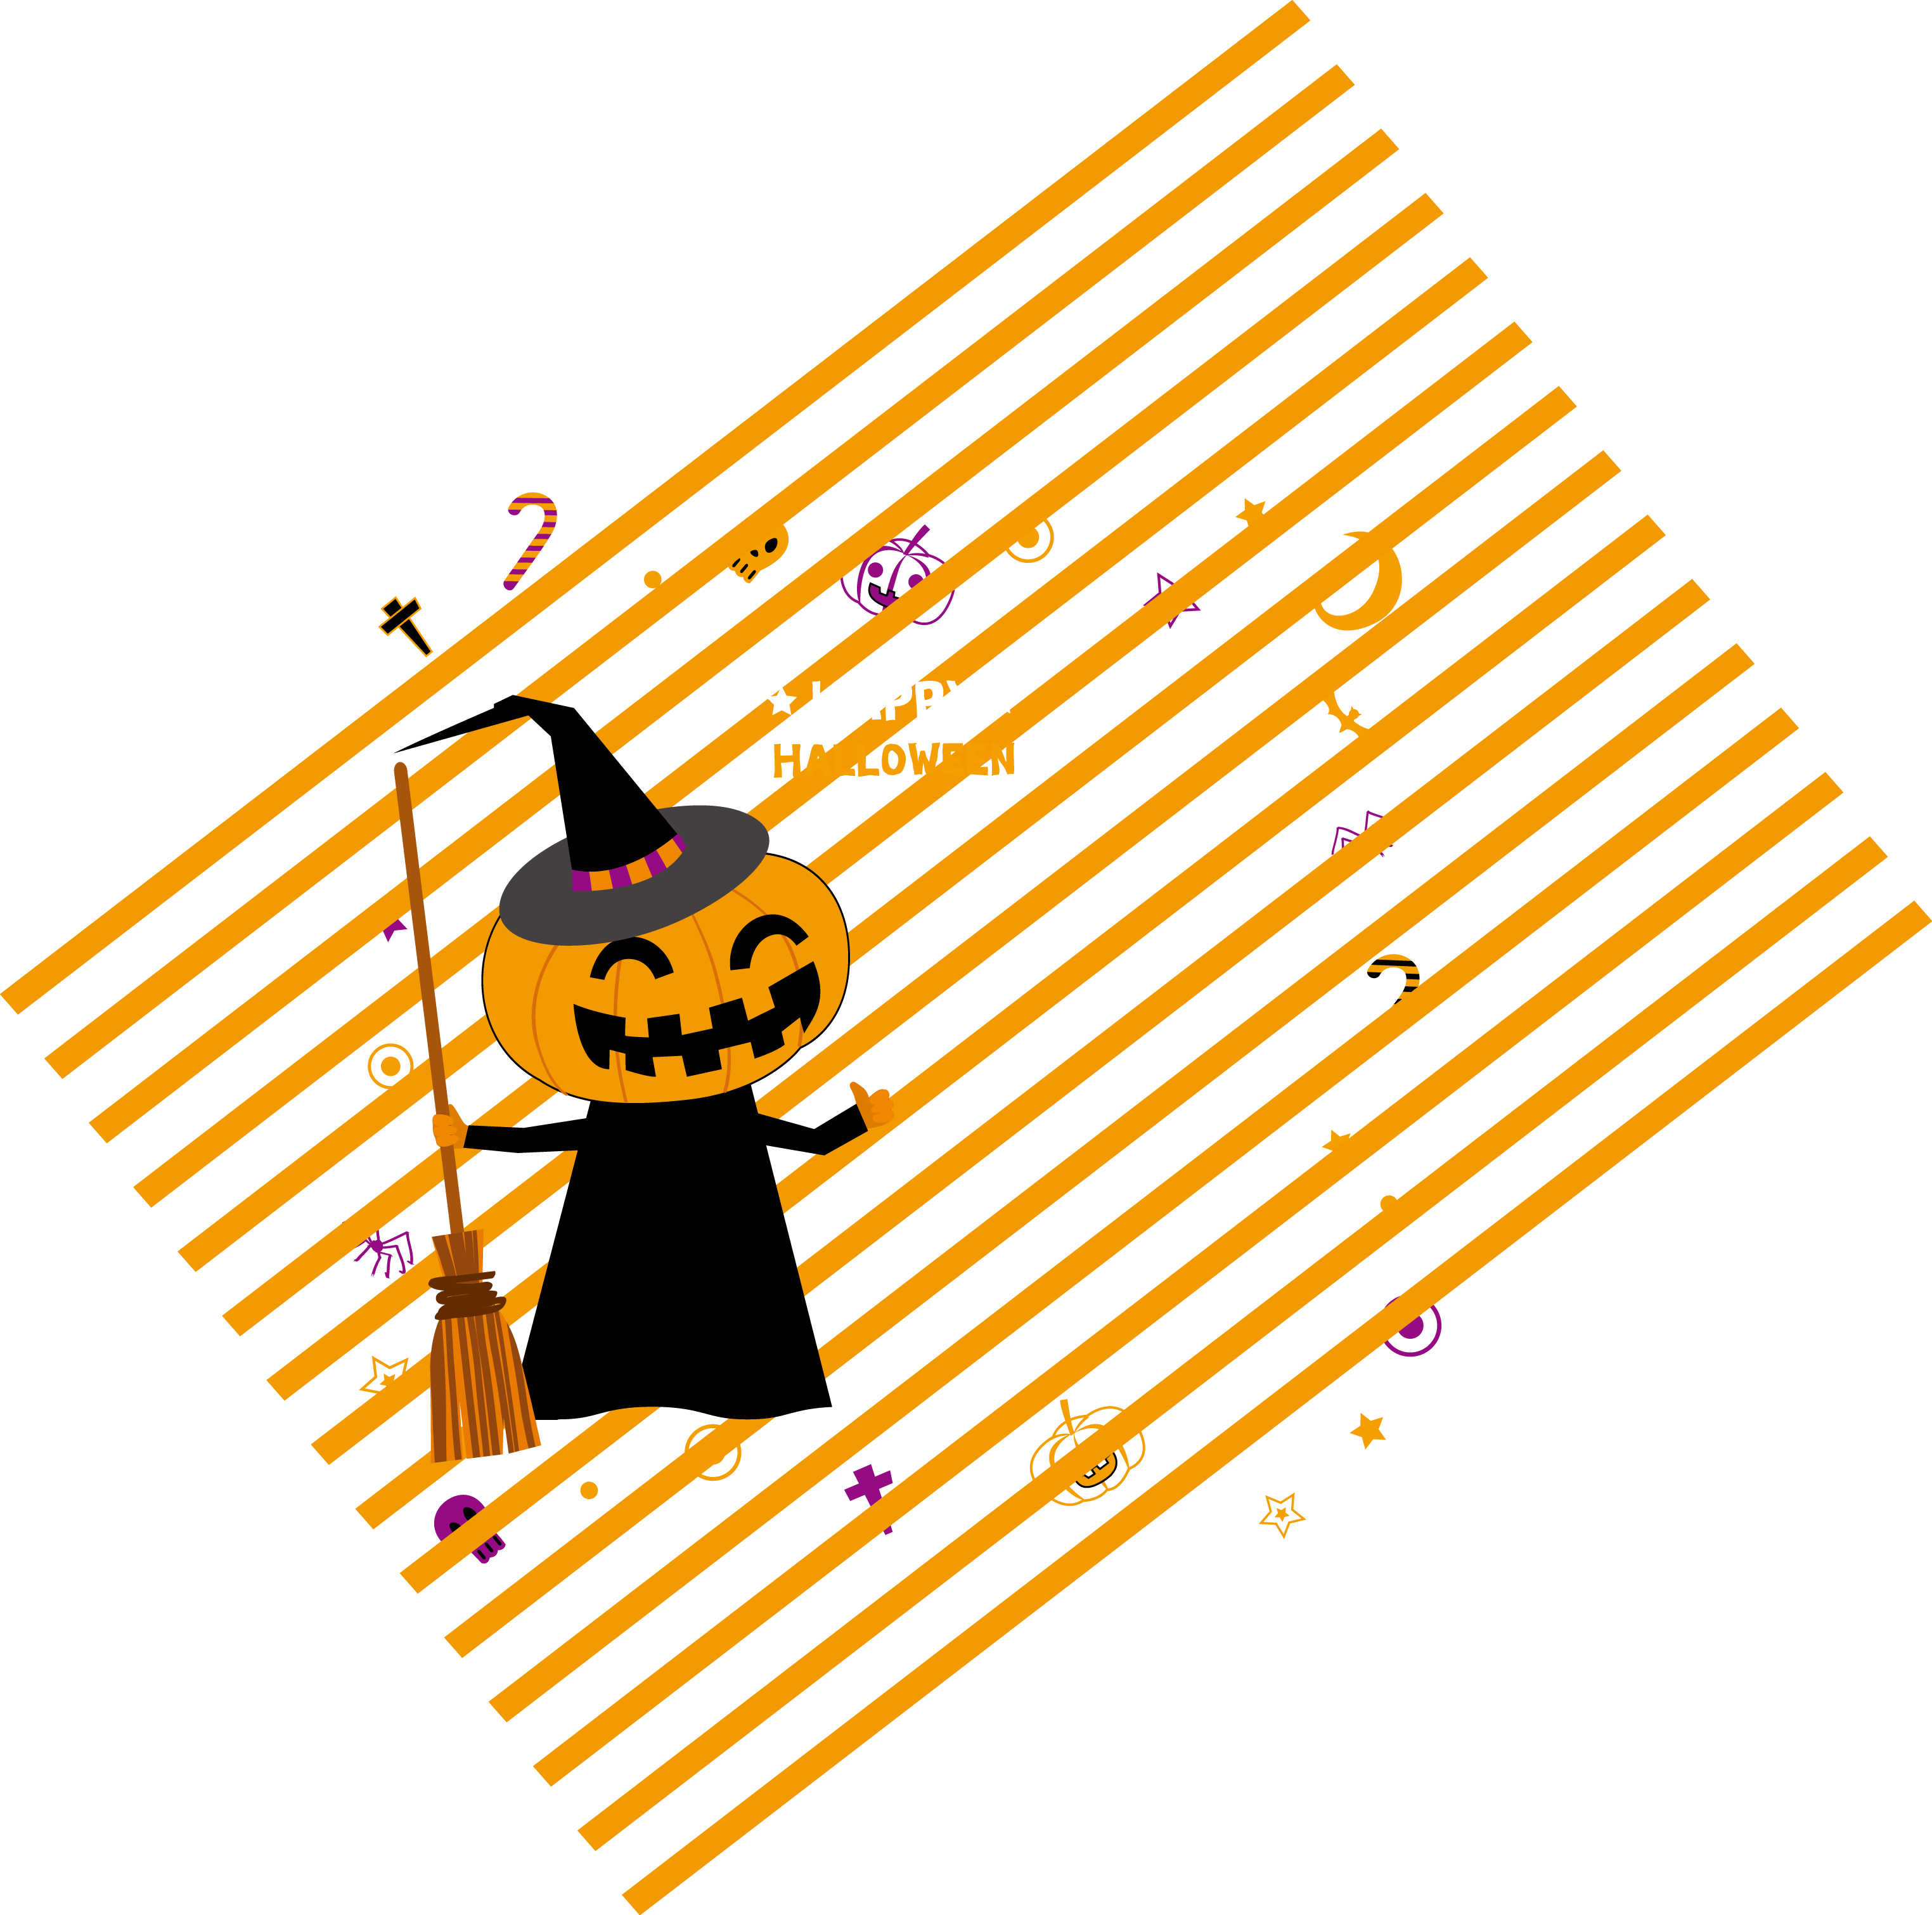 Stripy pumpkin clipart picture download Calabaza Pumpkin Halloween - Yellow stripe background pumpkin ... picture download